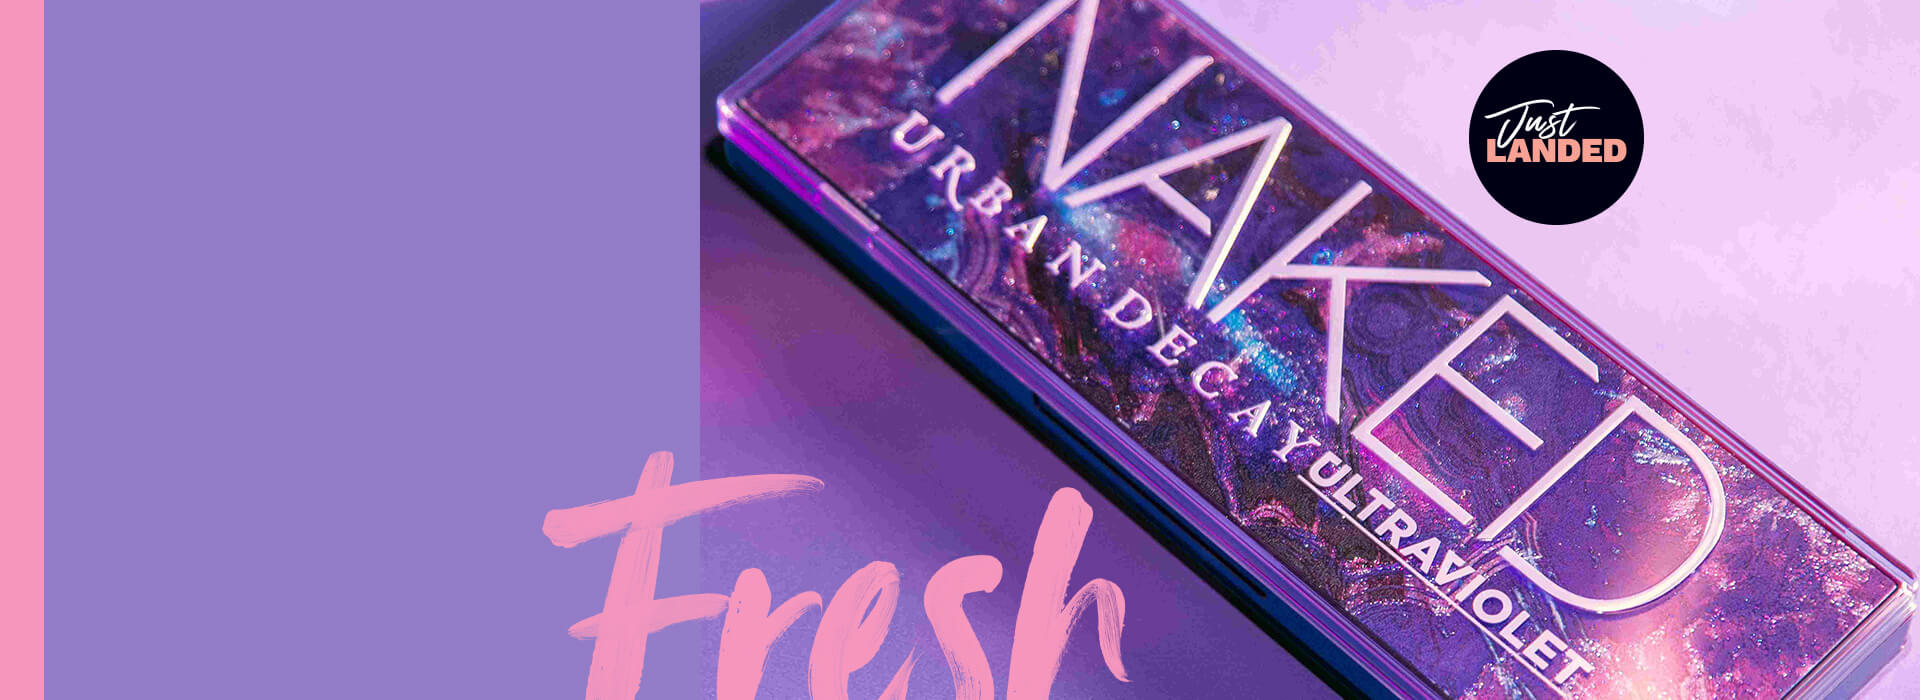 New Urban decay ultra violet palette. shop now